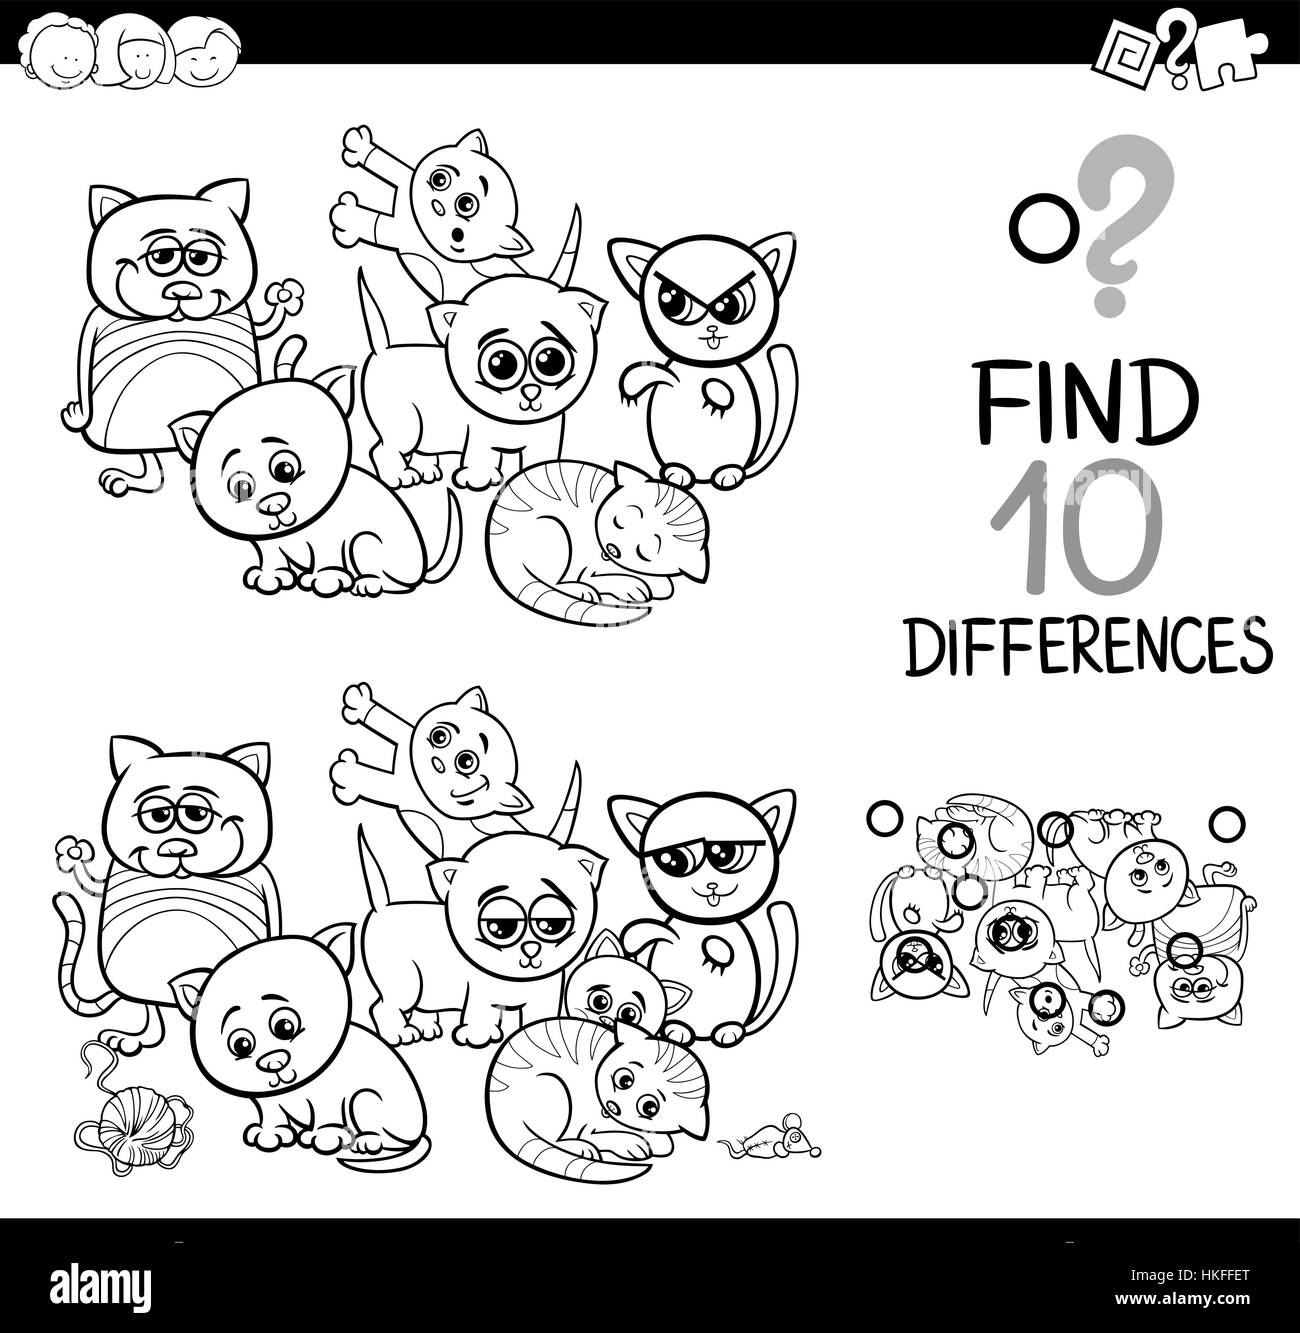 black and white cartoon illustration of finding differences stock